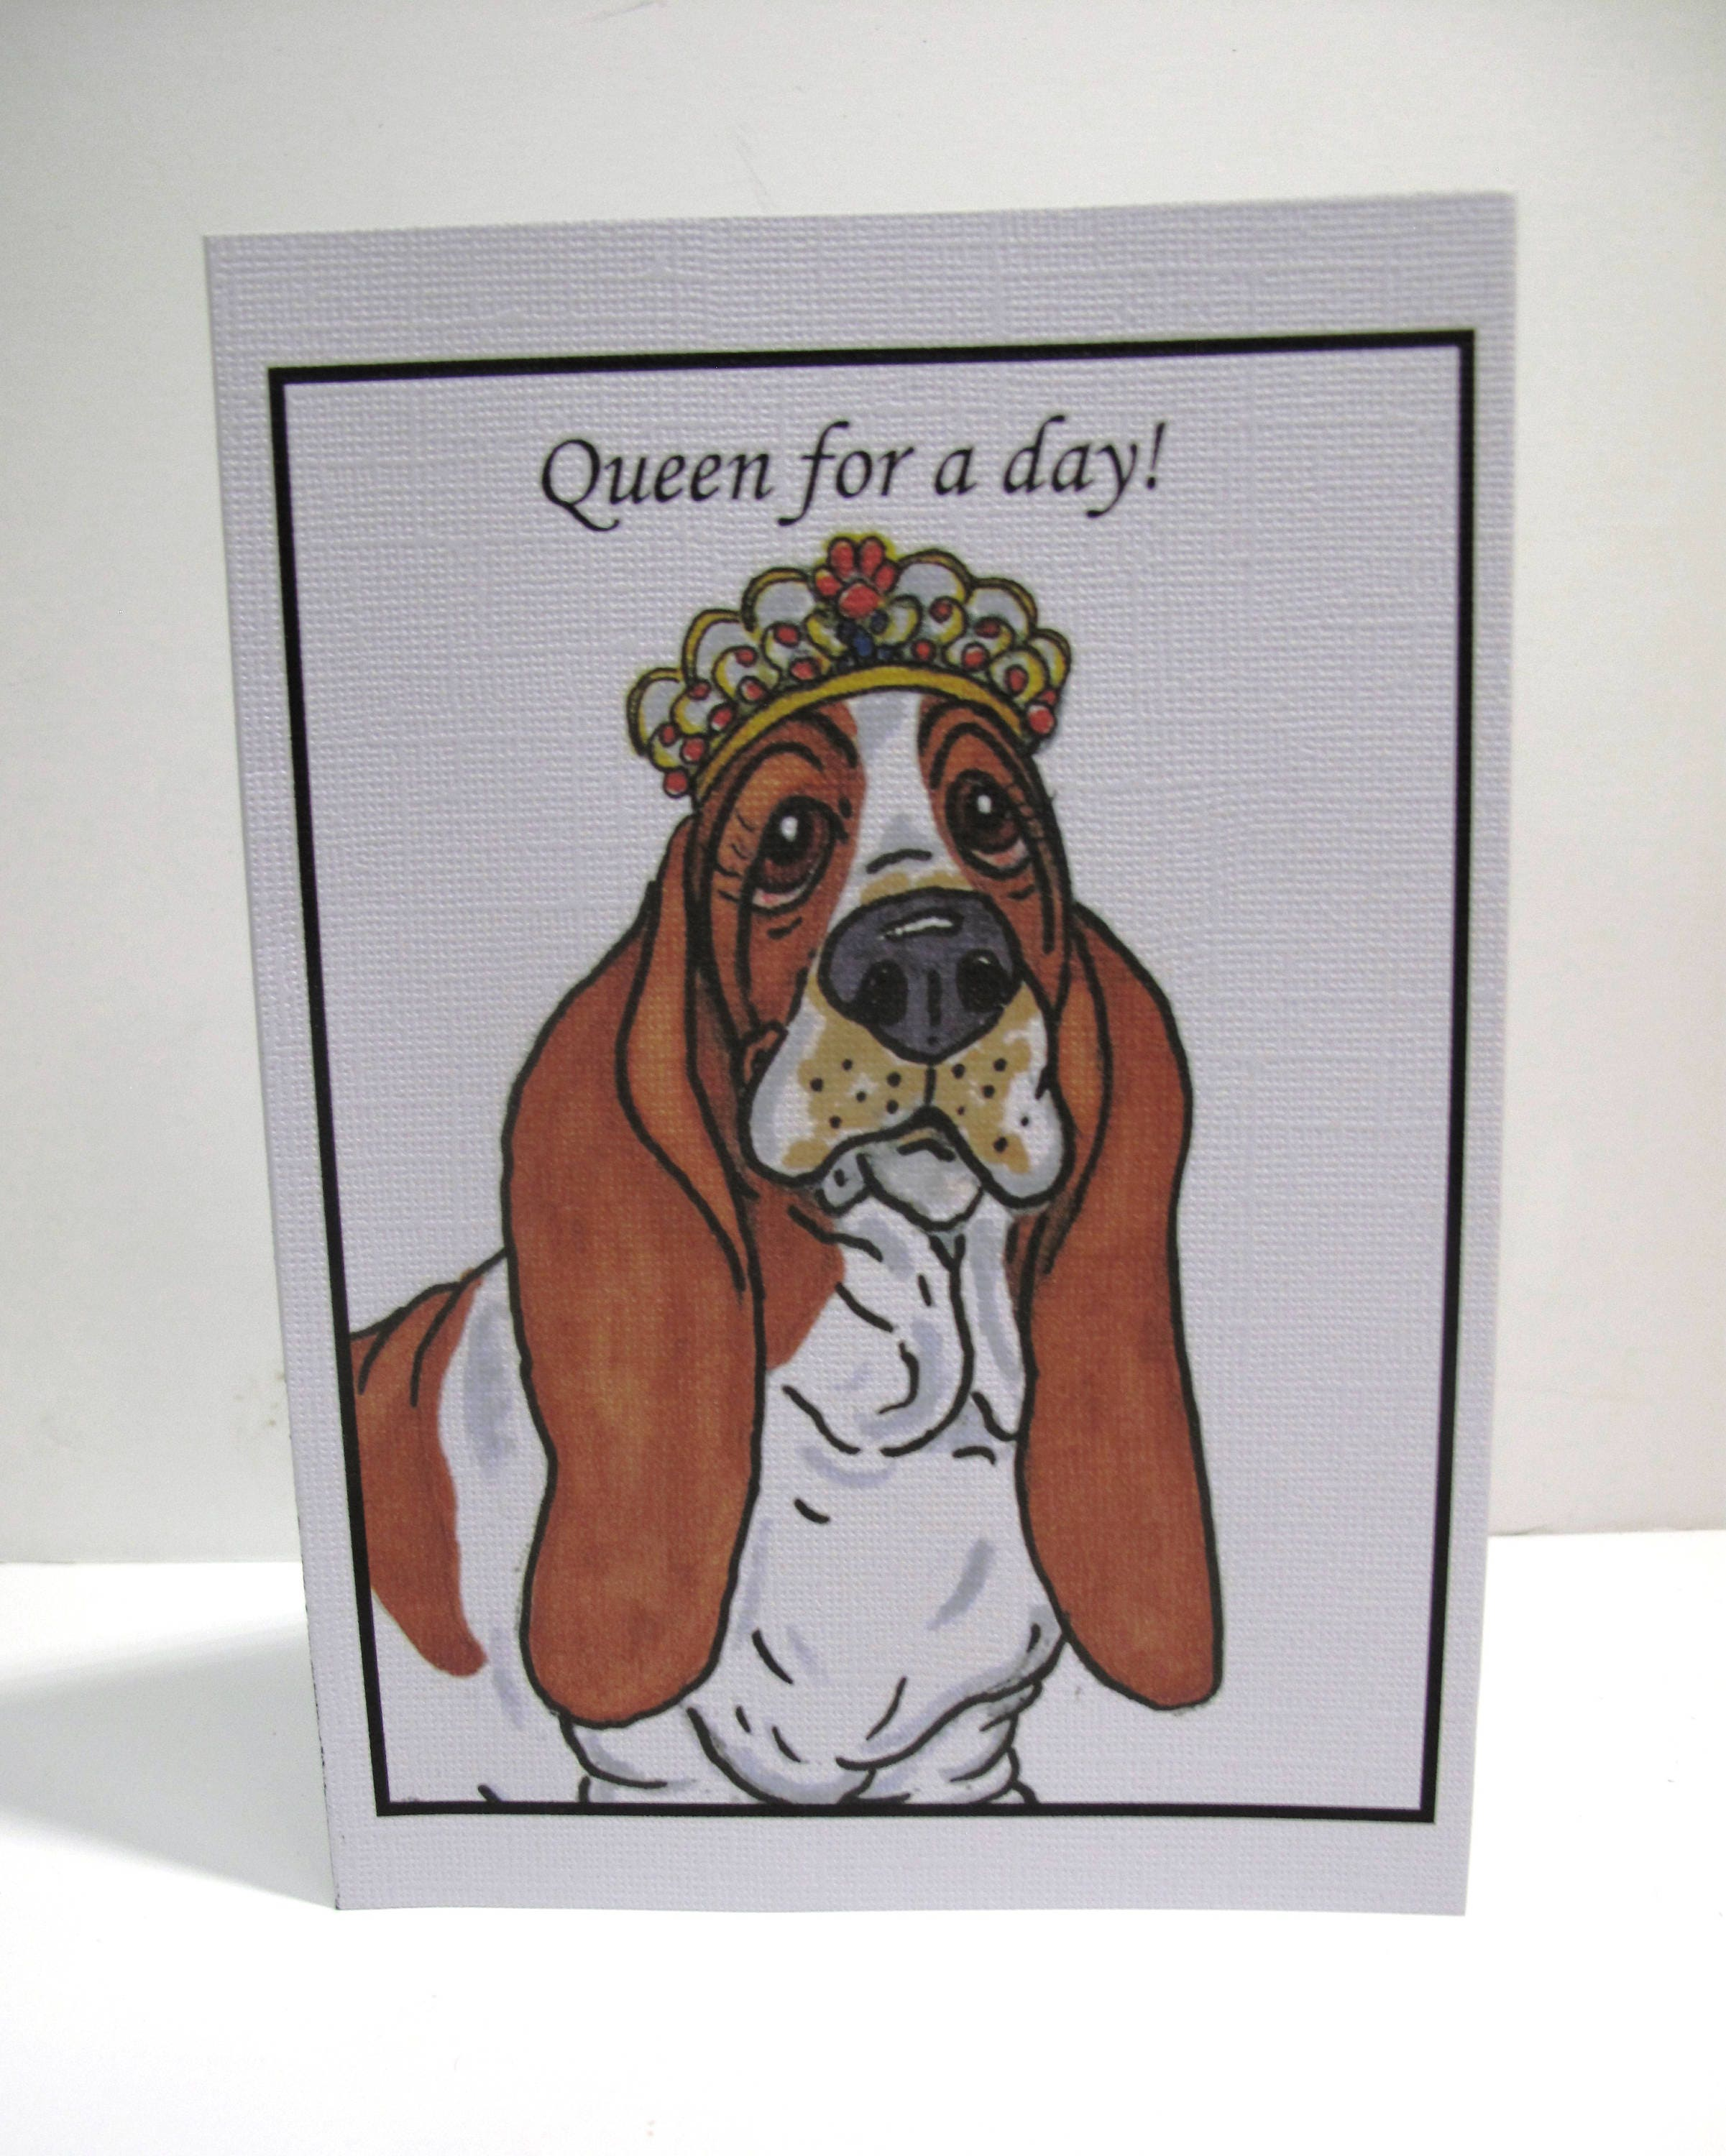 4 Queen for a day Basset Hound 5 x 7 Greeting | Etsy